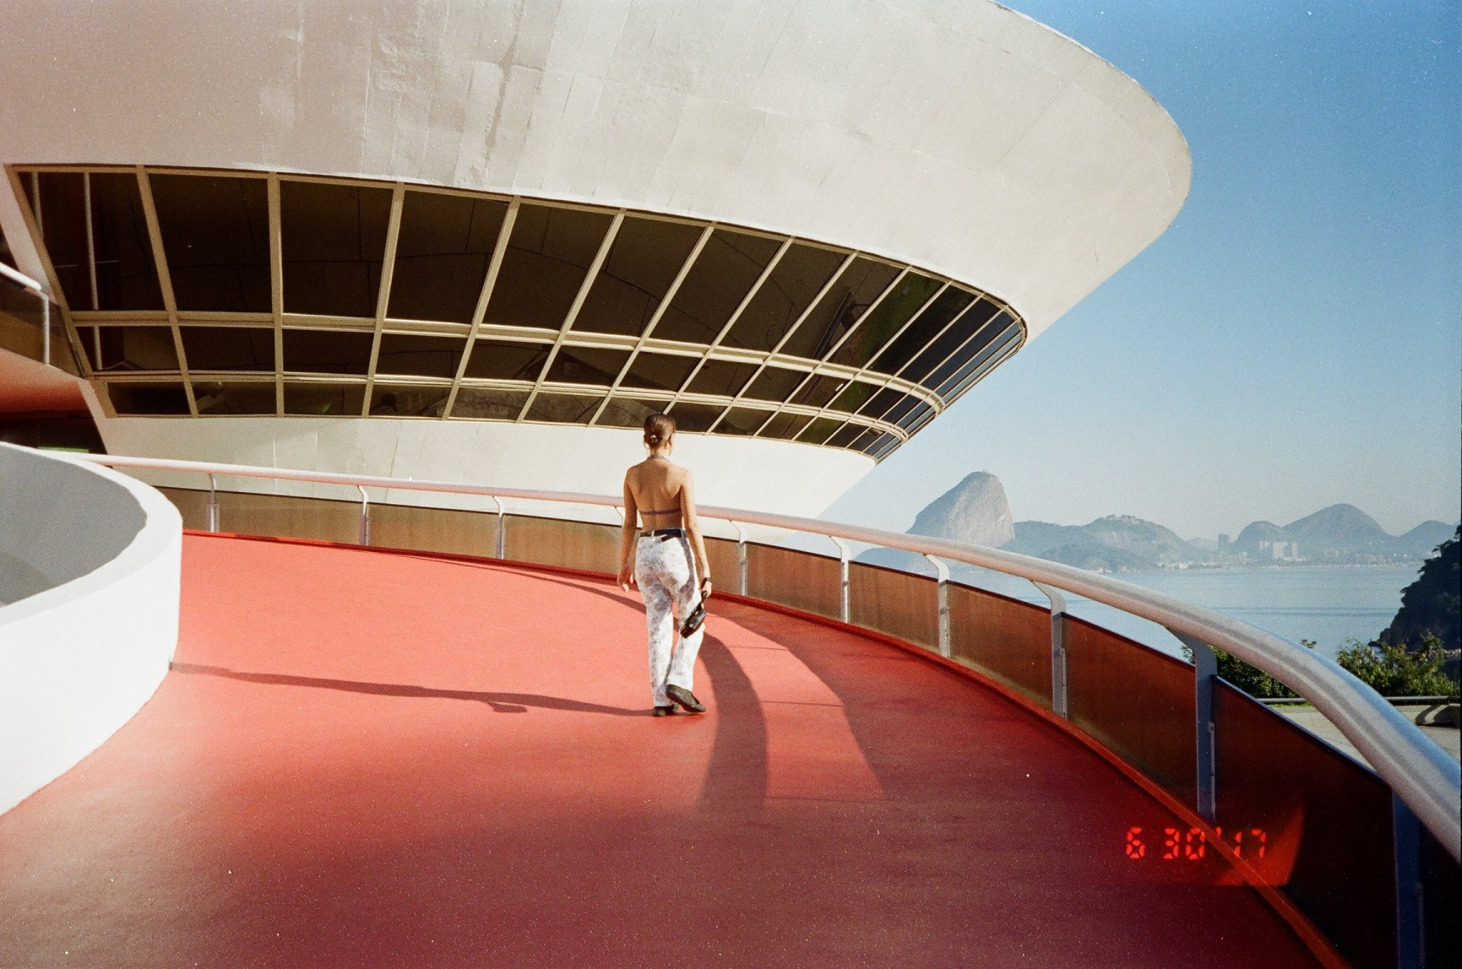 Photo by Douglas Barros, set in the Museum of Contemporary Art (MAC), iconic architecture by Oscar Niemeyer, in Niterói, Brazil